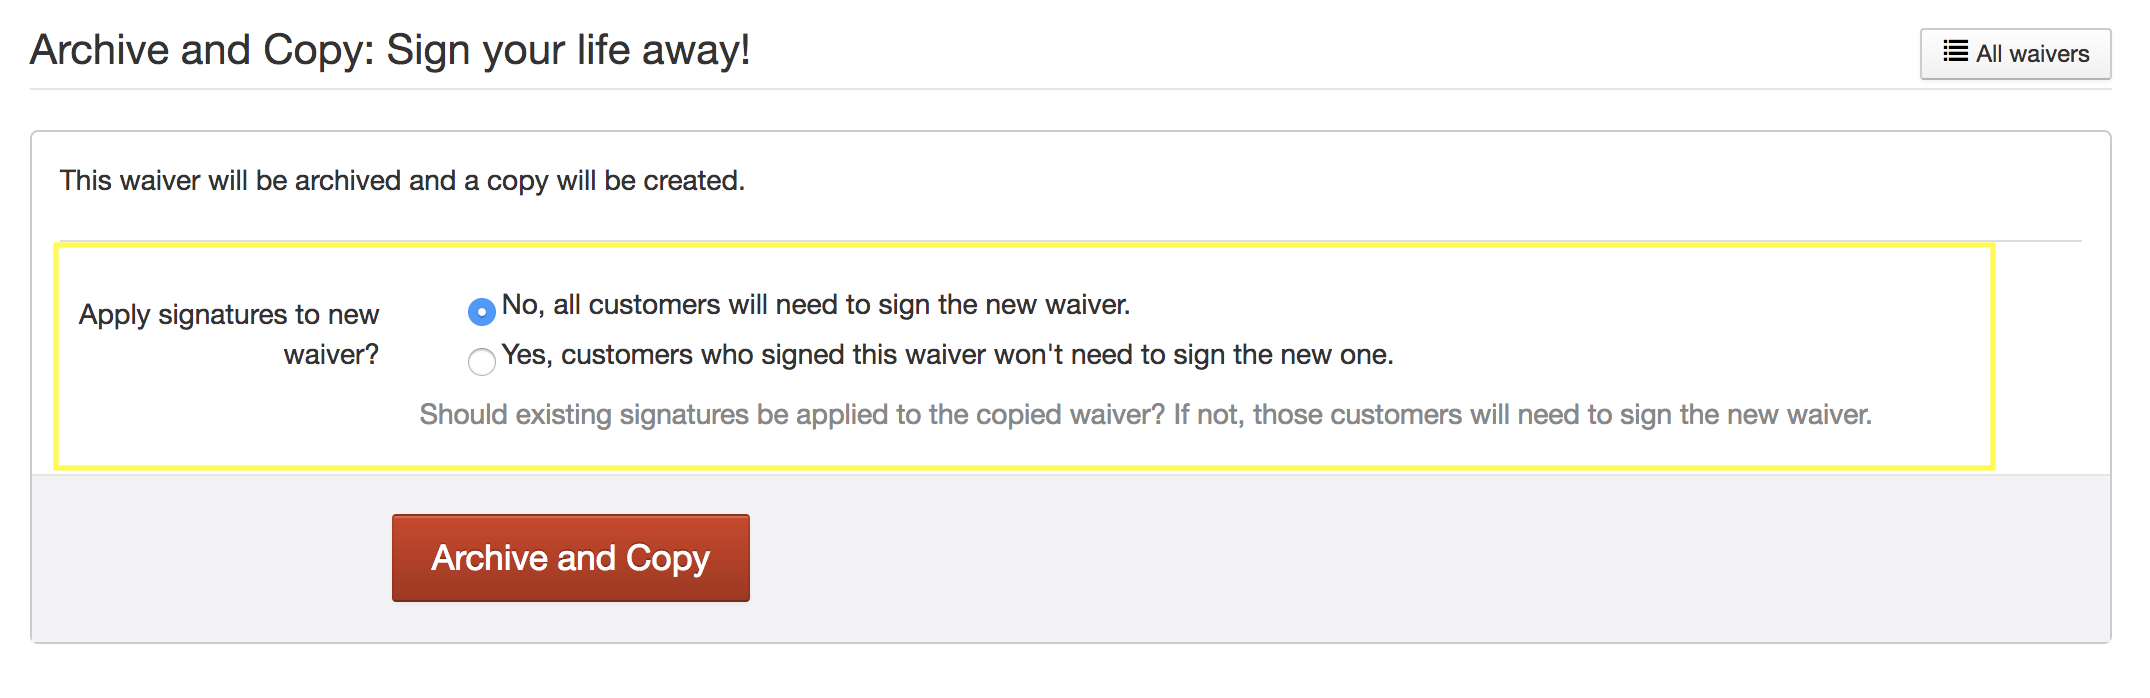 Waivers____Archive___copy____Who_should_sign.png